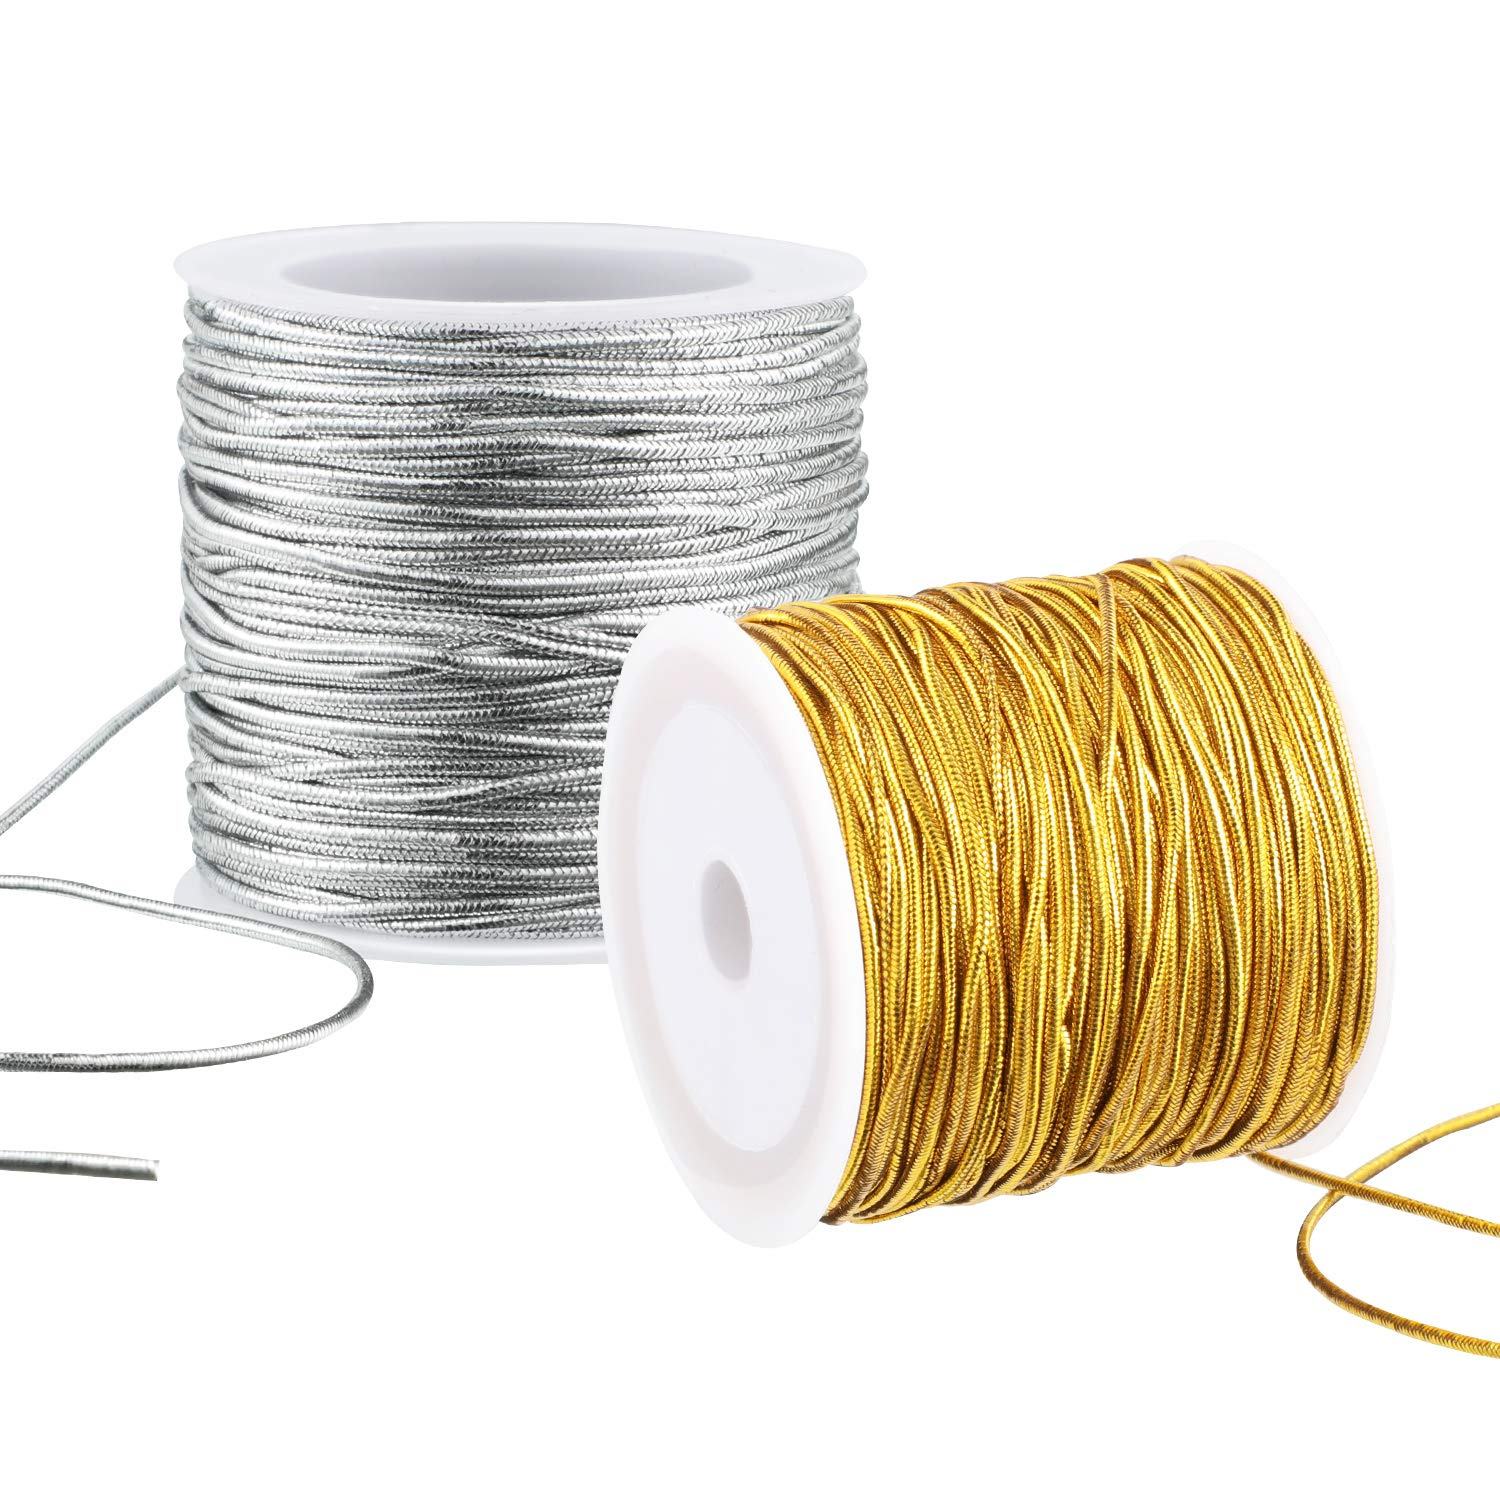 Spool Green String Metallic Cord Tinsel String Craft Making Cord for Wrapping,Hair Braiding and Craft Making 100 Meters// 109 Yards-1mm